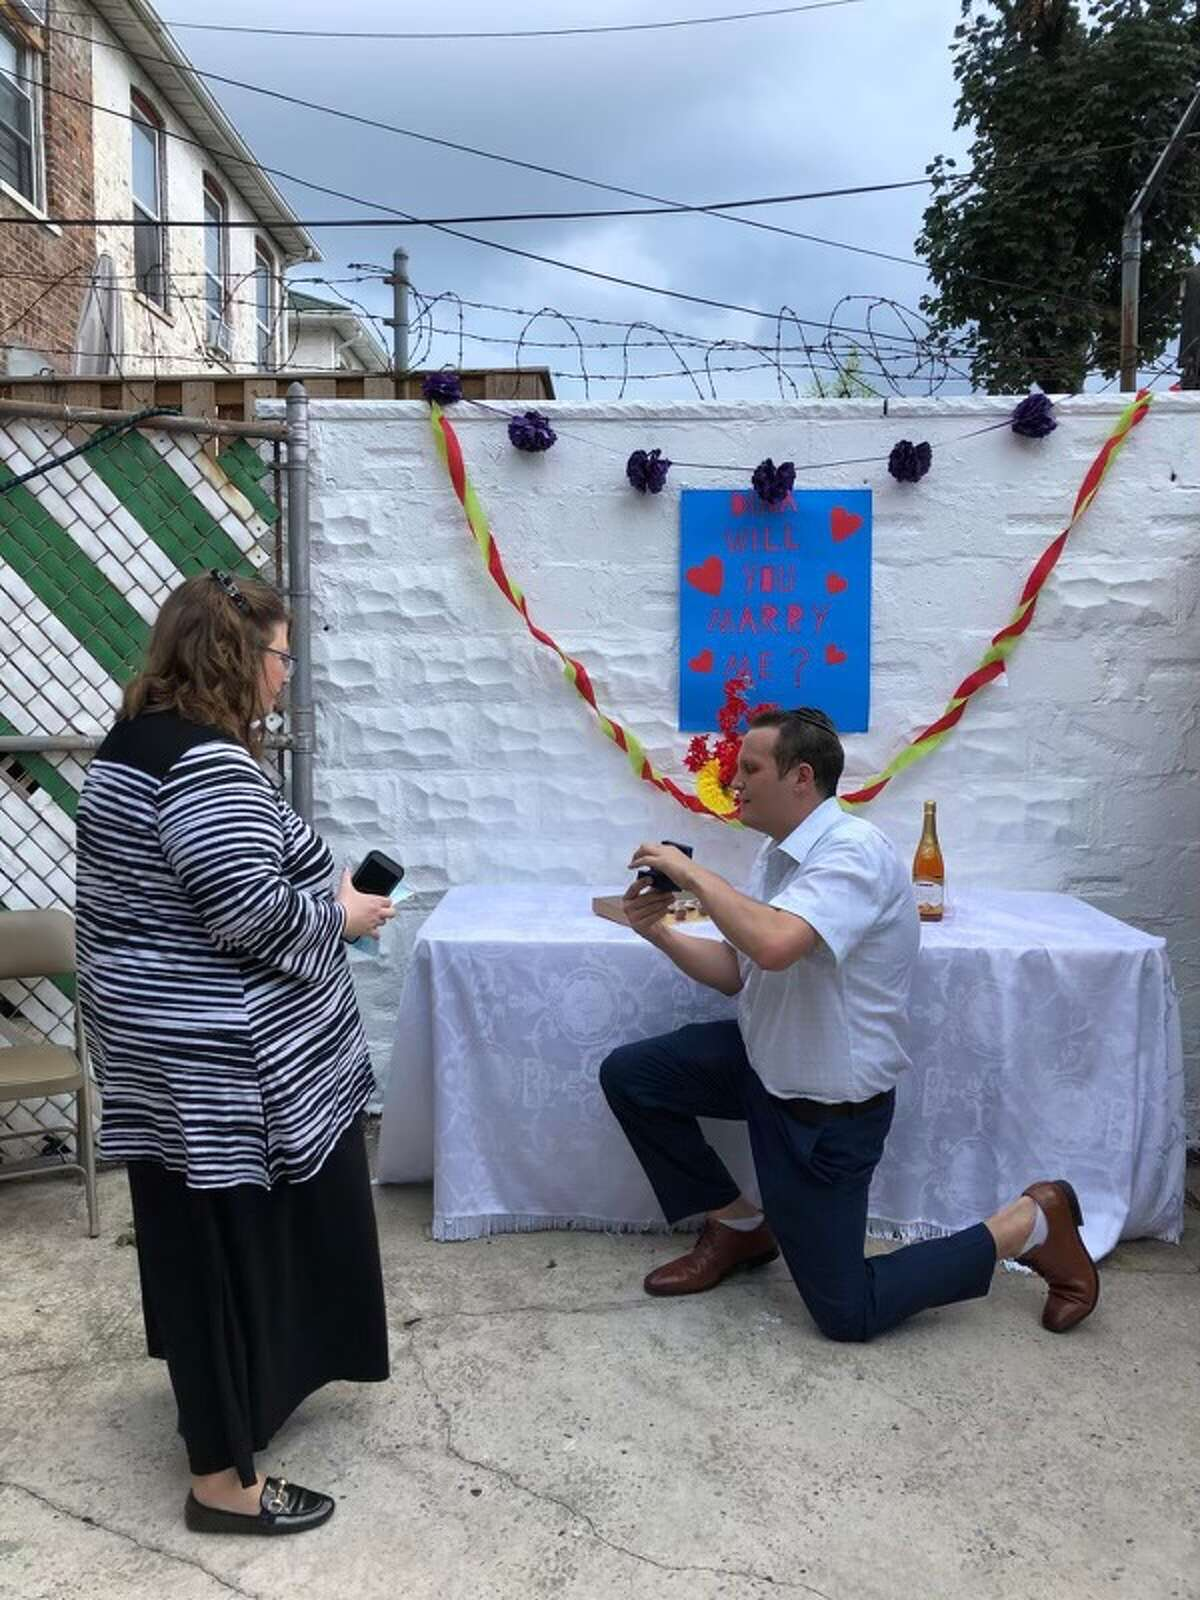 From right, Eli Finkelstein proposes to Dina Wolf in Brooklyn in the summer of 2020. The couple have disabilities and are seeking supportive housing together so they can wed. (Photo courtesy of Ruth Finkelstein)